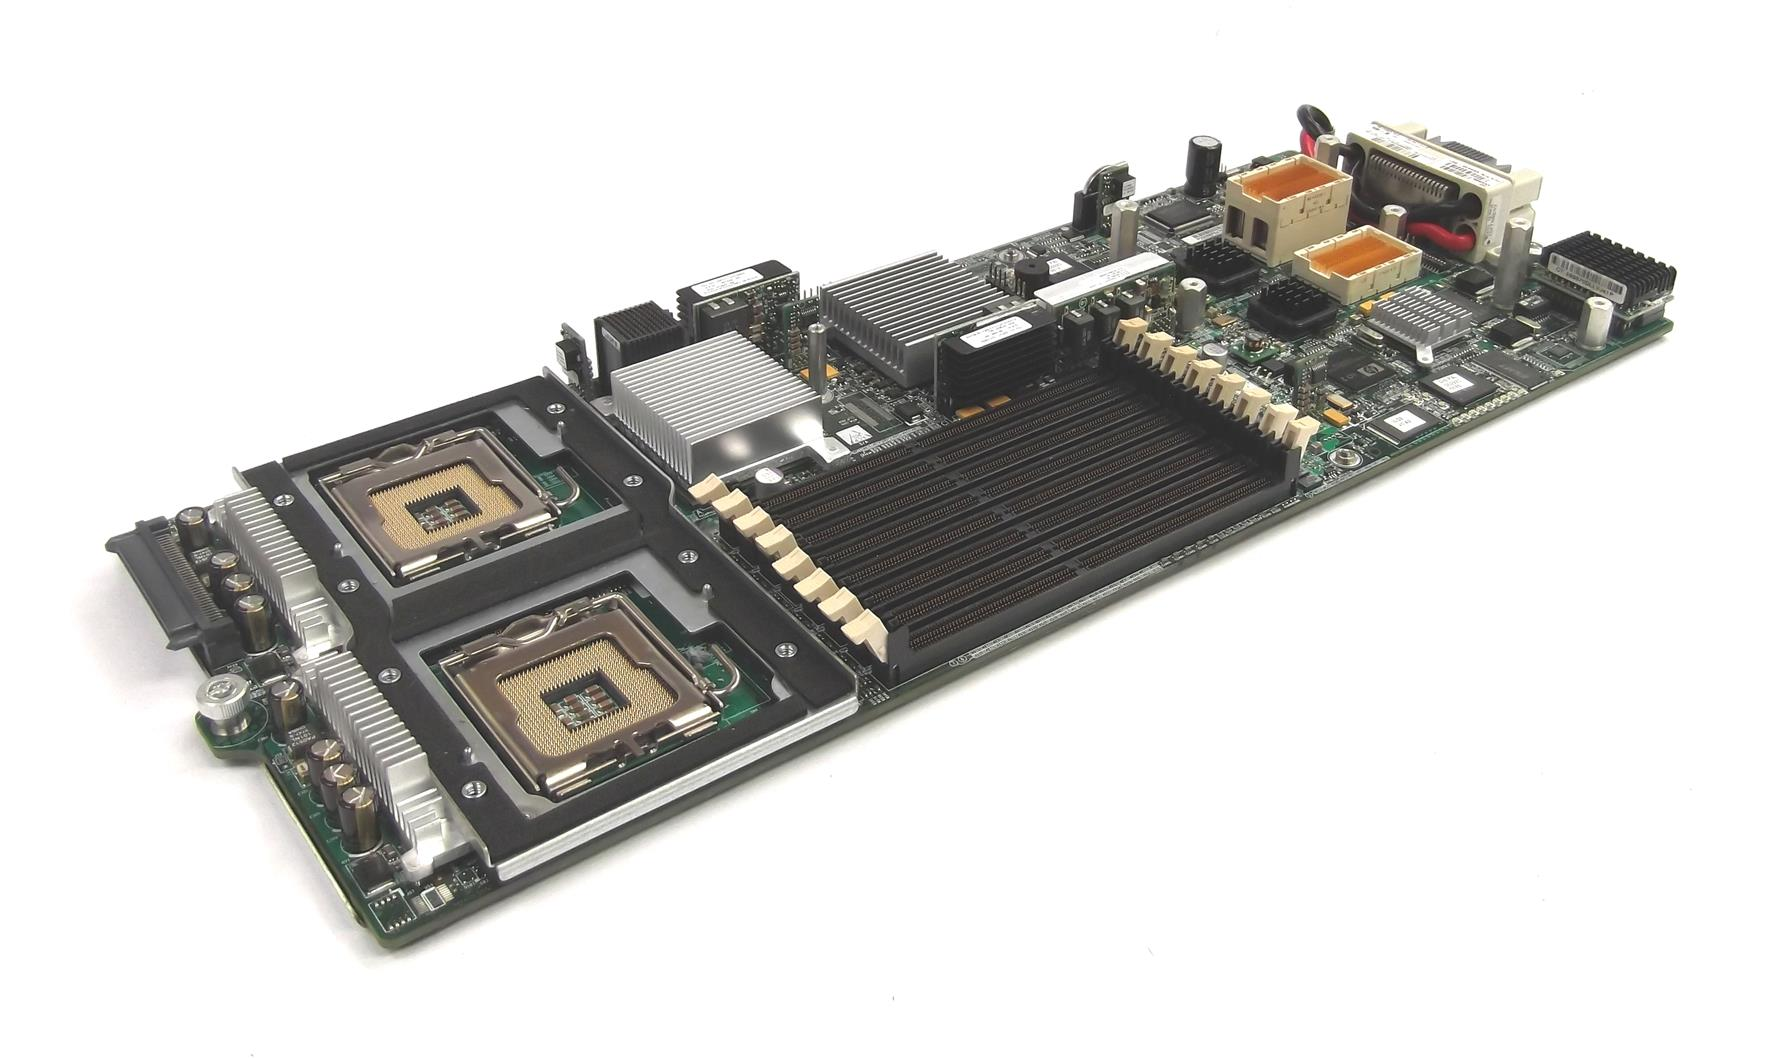 438249-001 - MOTHERBOARD (SYSTEM BOARD) - SUPPORTS QUAD-CORE PROCESSOR